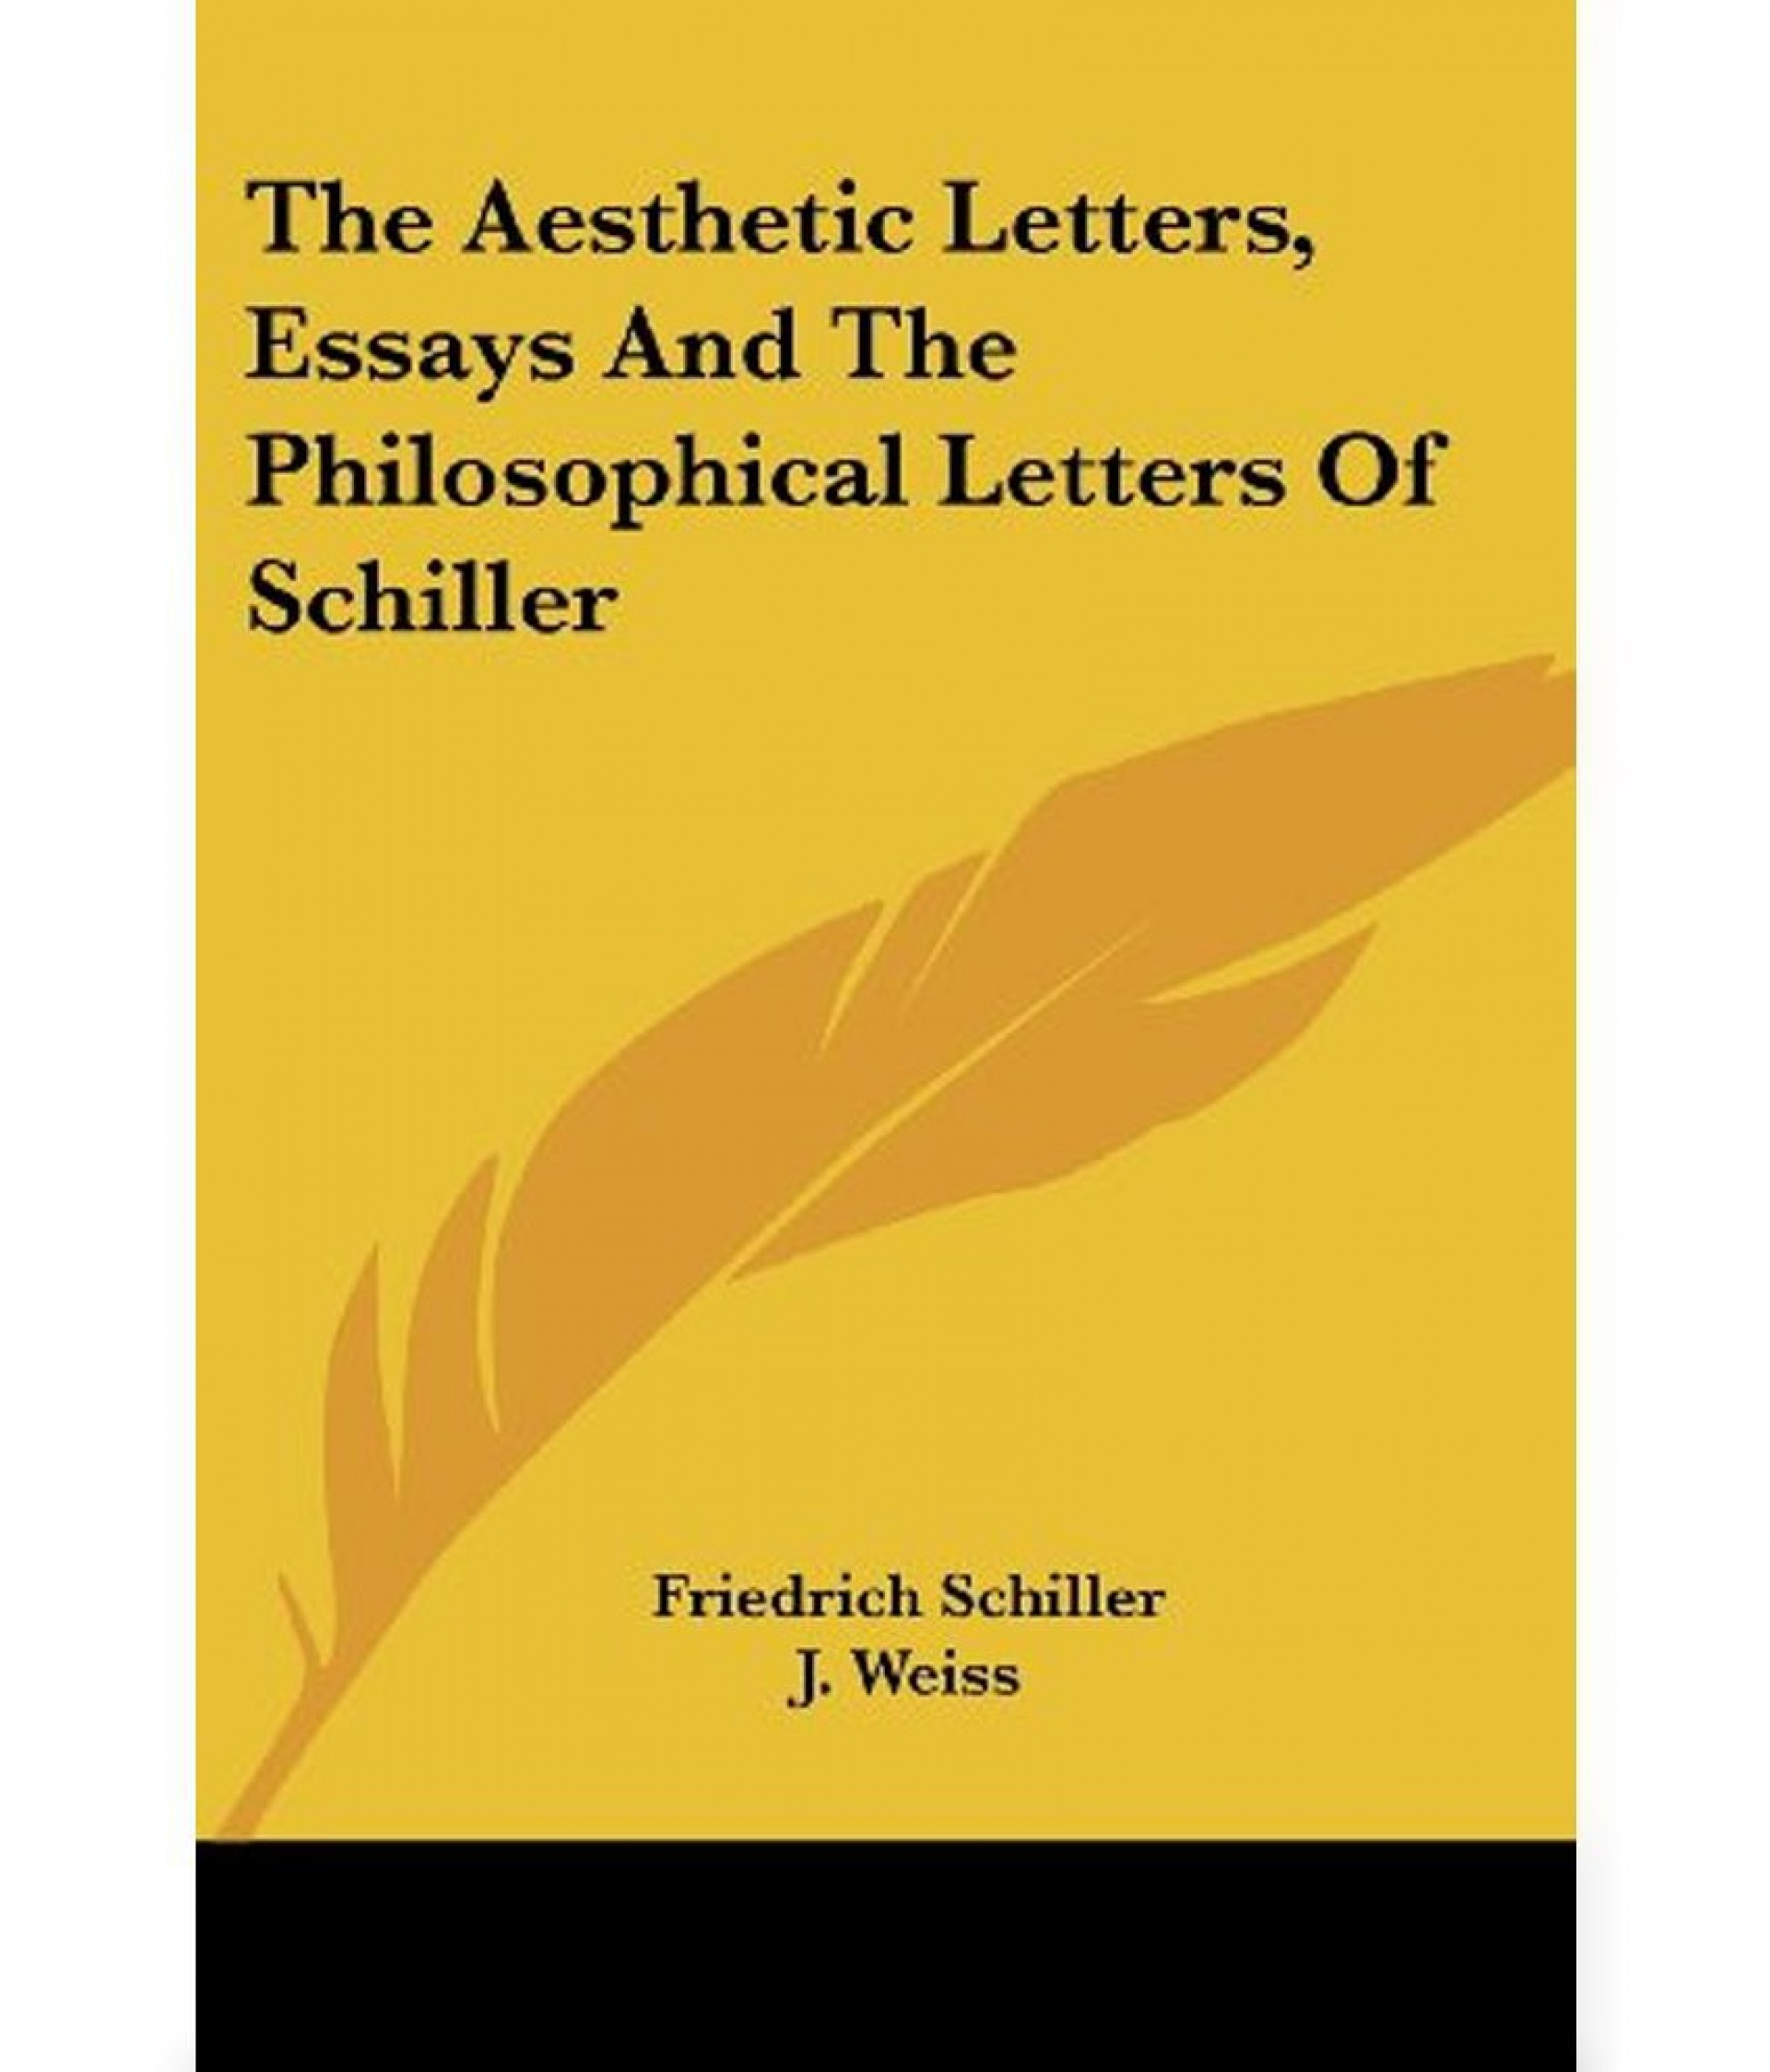 010 Essay Example The Aesthetic Letters Essays And Sdl905749925 Awful Schiller Friedrich 1920